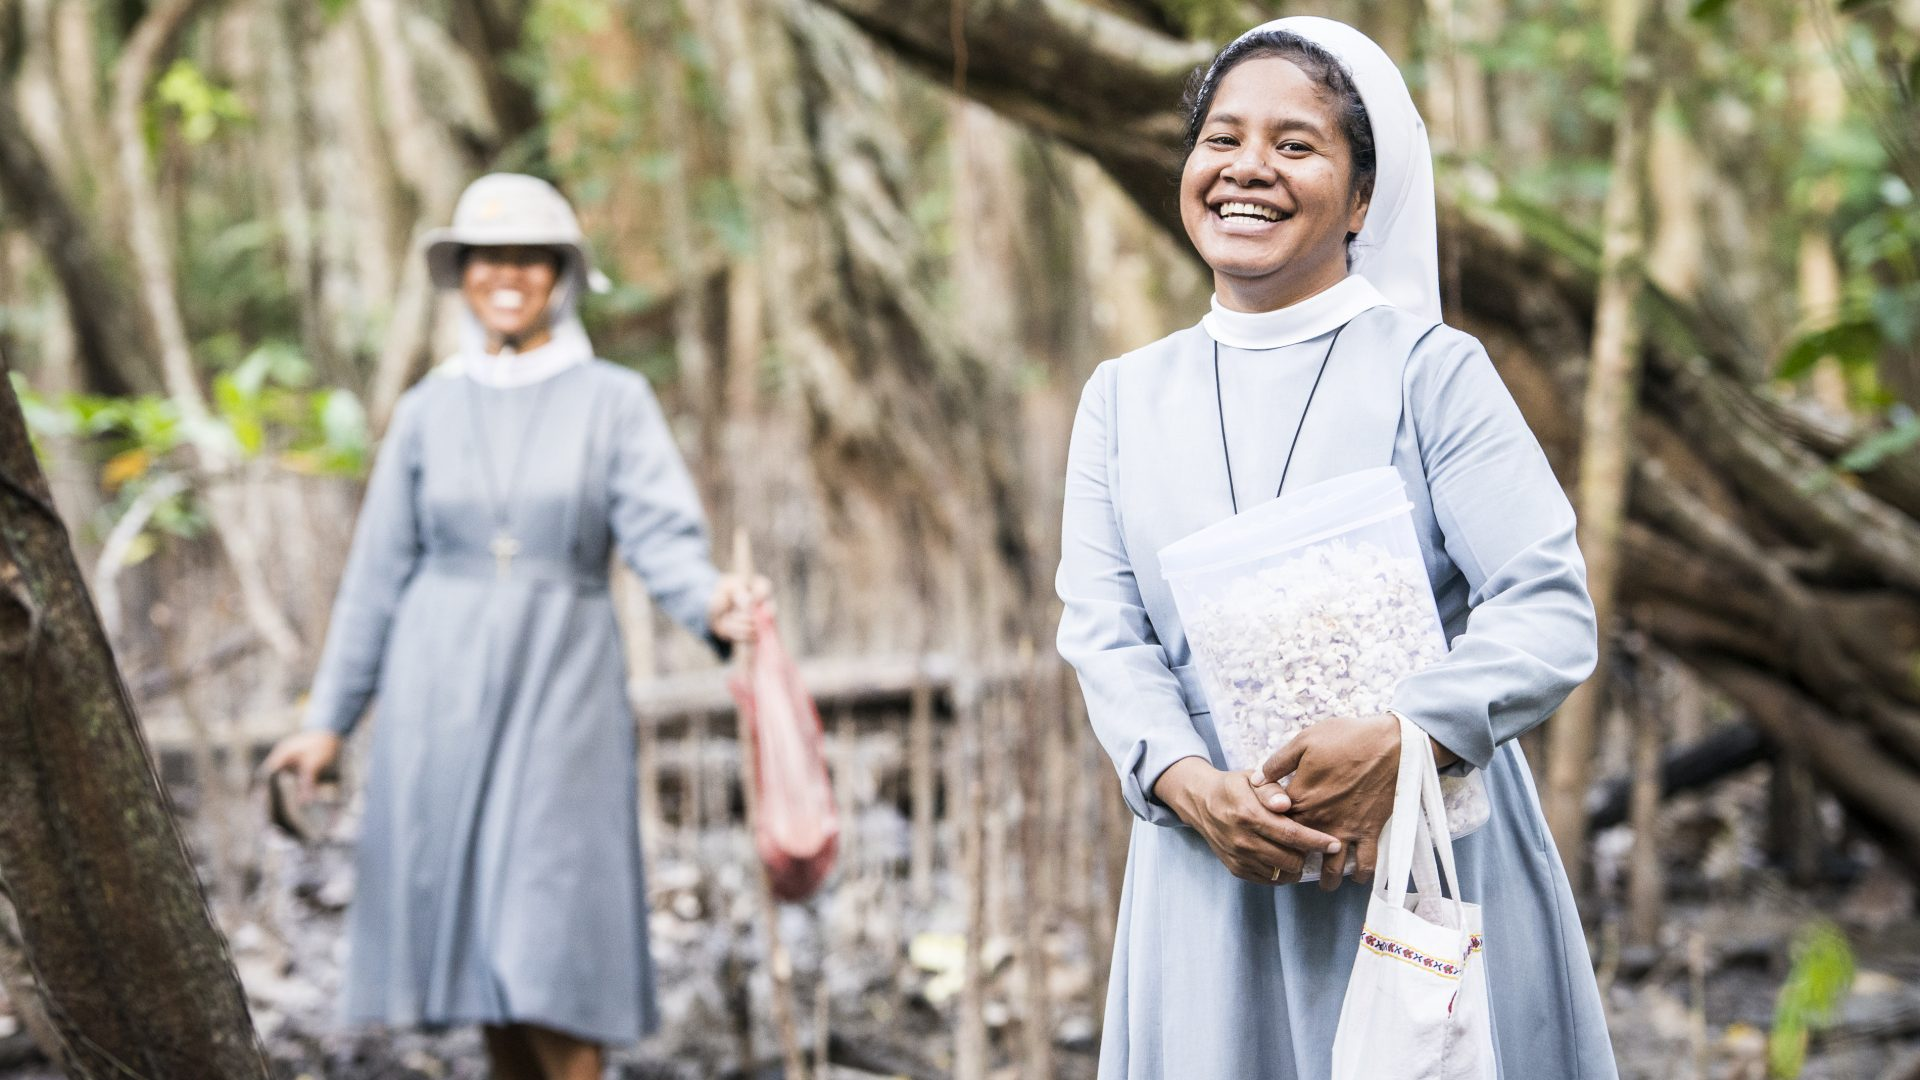 Nuns from East Timor have a laugh while standing in a swamp, carrying popcorn.